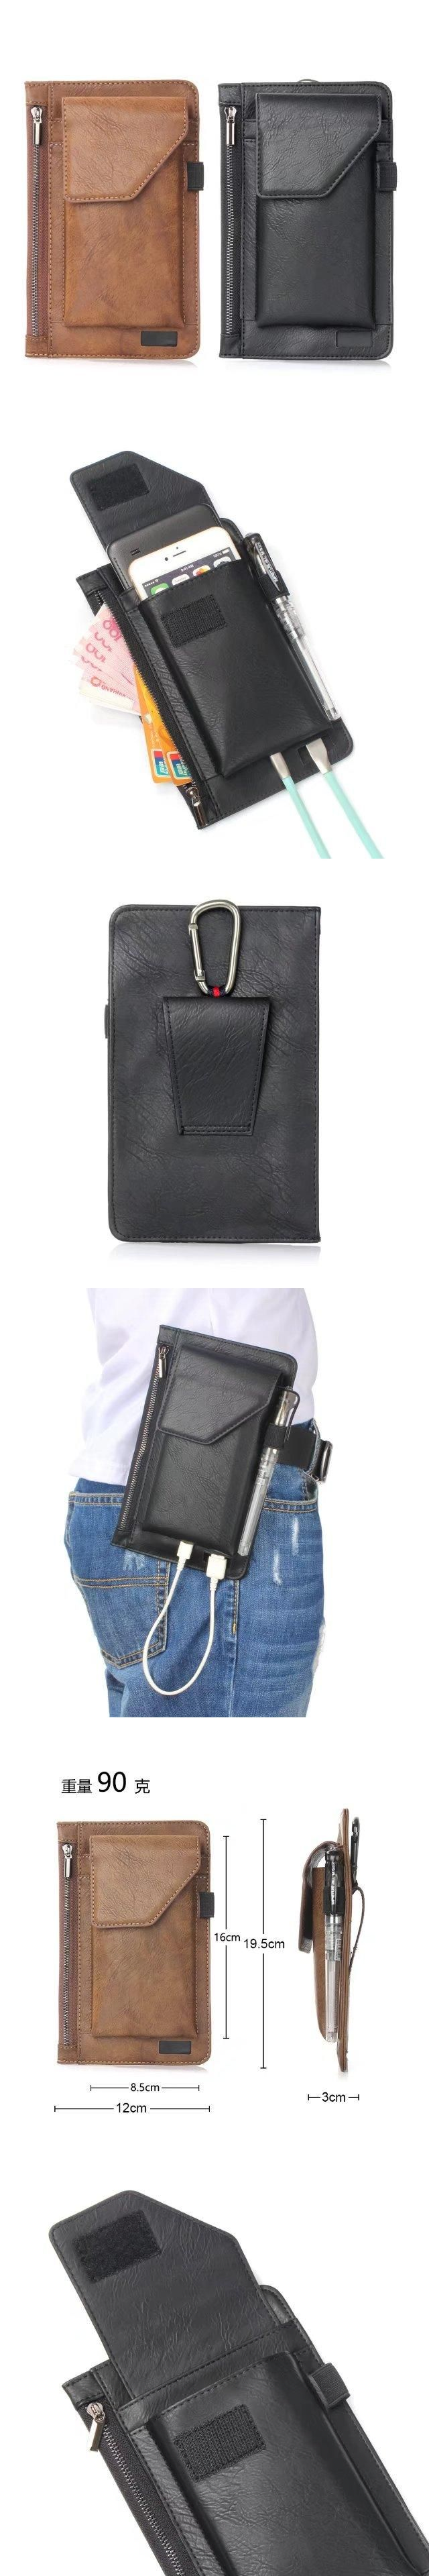 Fashion 2017 PU Leather Mobile Phone Bags For Samsung S3 S4 S5 S6 S7 S8 Edge Plus Multifunction Case Luxury Purse A3 A5 A7 Cover